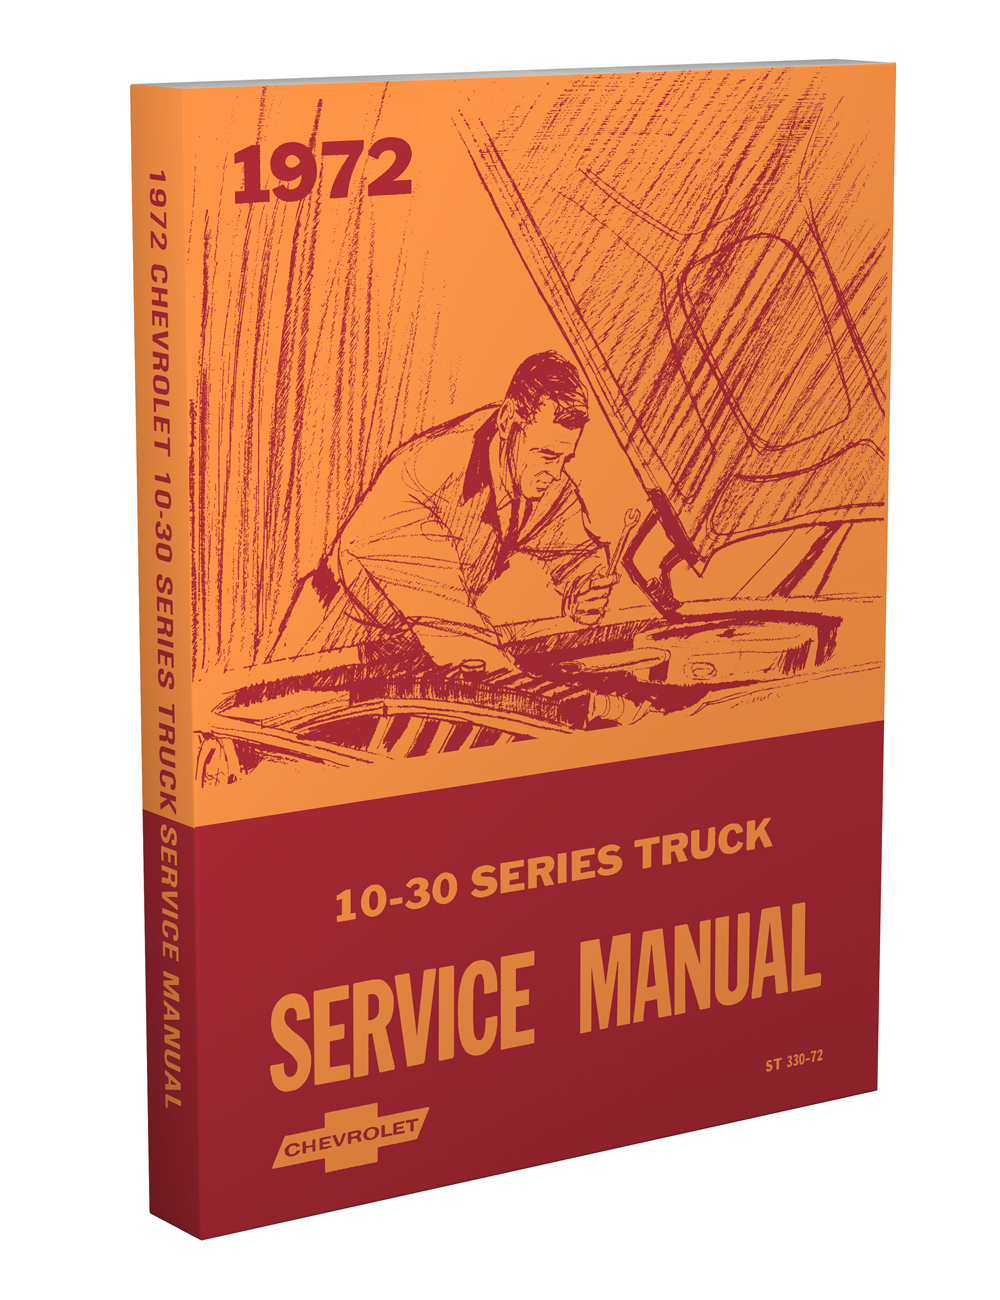 1972 Chevrolet Truck Repair Shop Manual Reprint Chevy Pickup Suburban Blazer